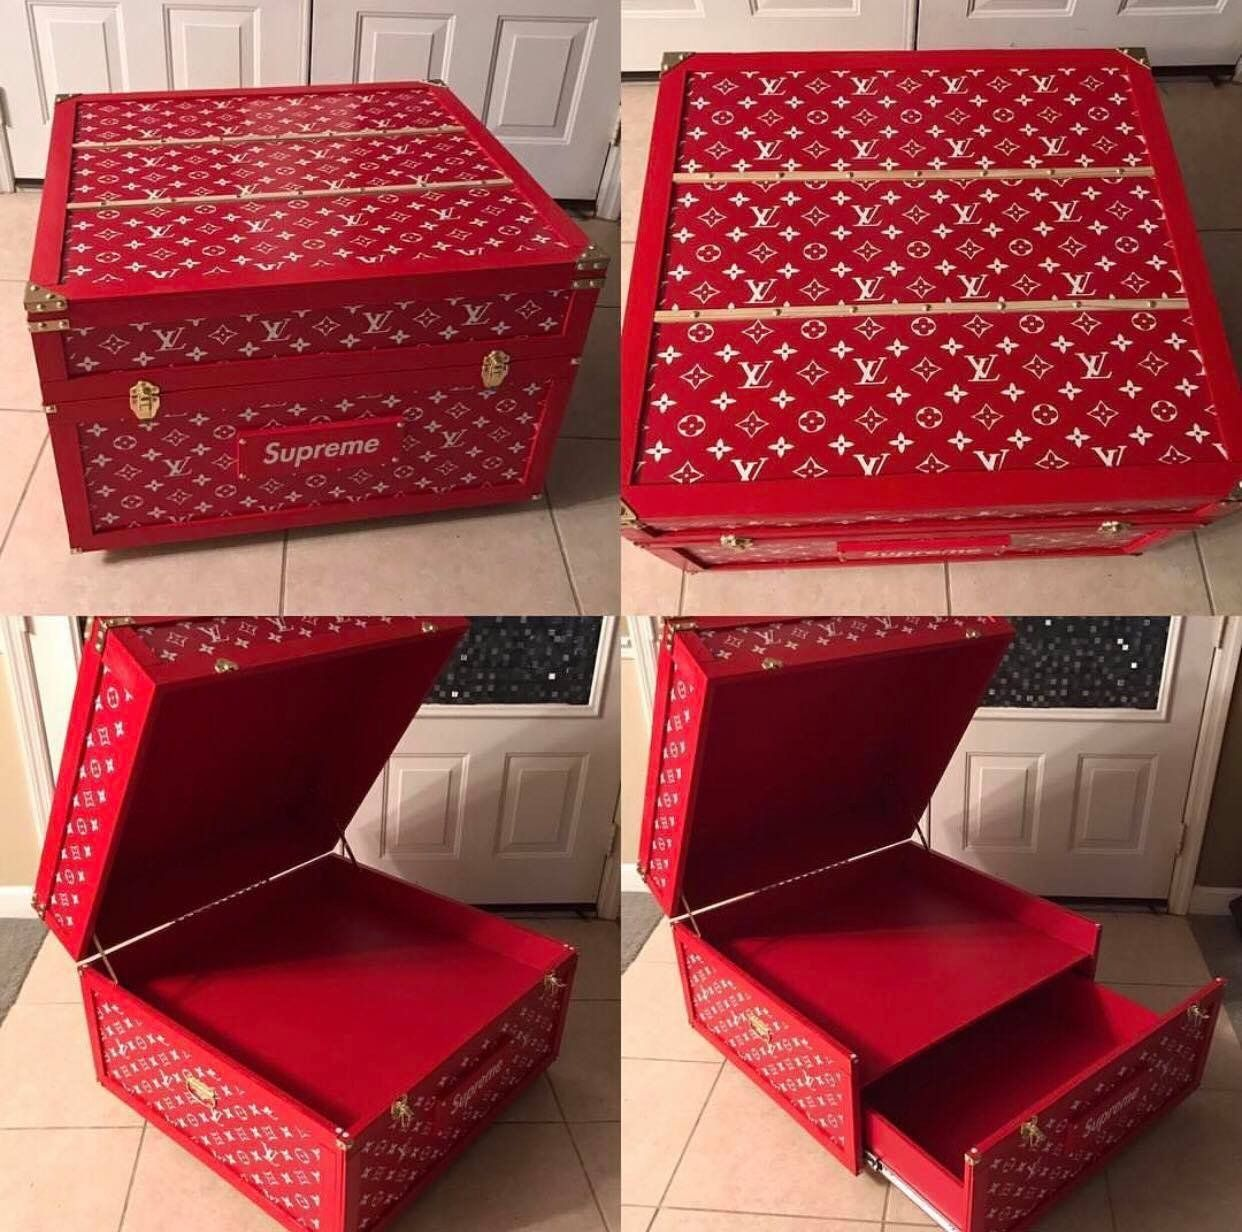 Meuble A Chaussure Xxl Louis Vuitton Supreme Shoe Storage Box 12 Pair En 2019